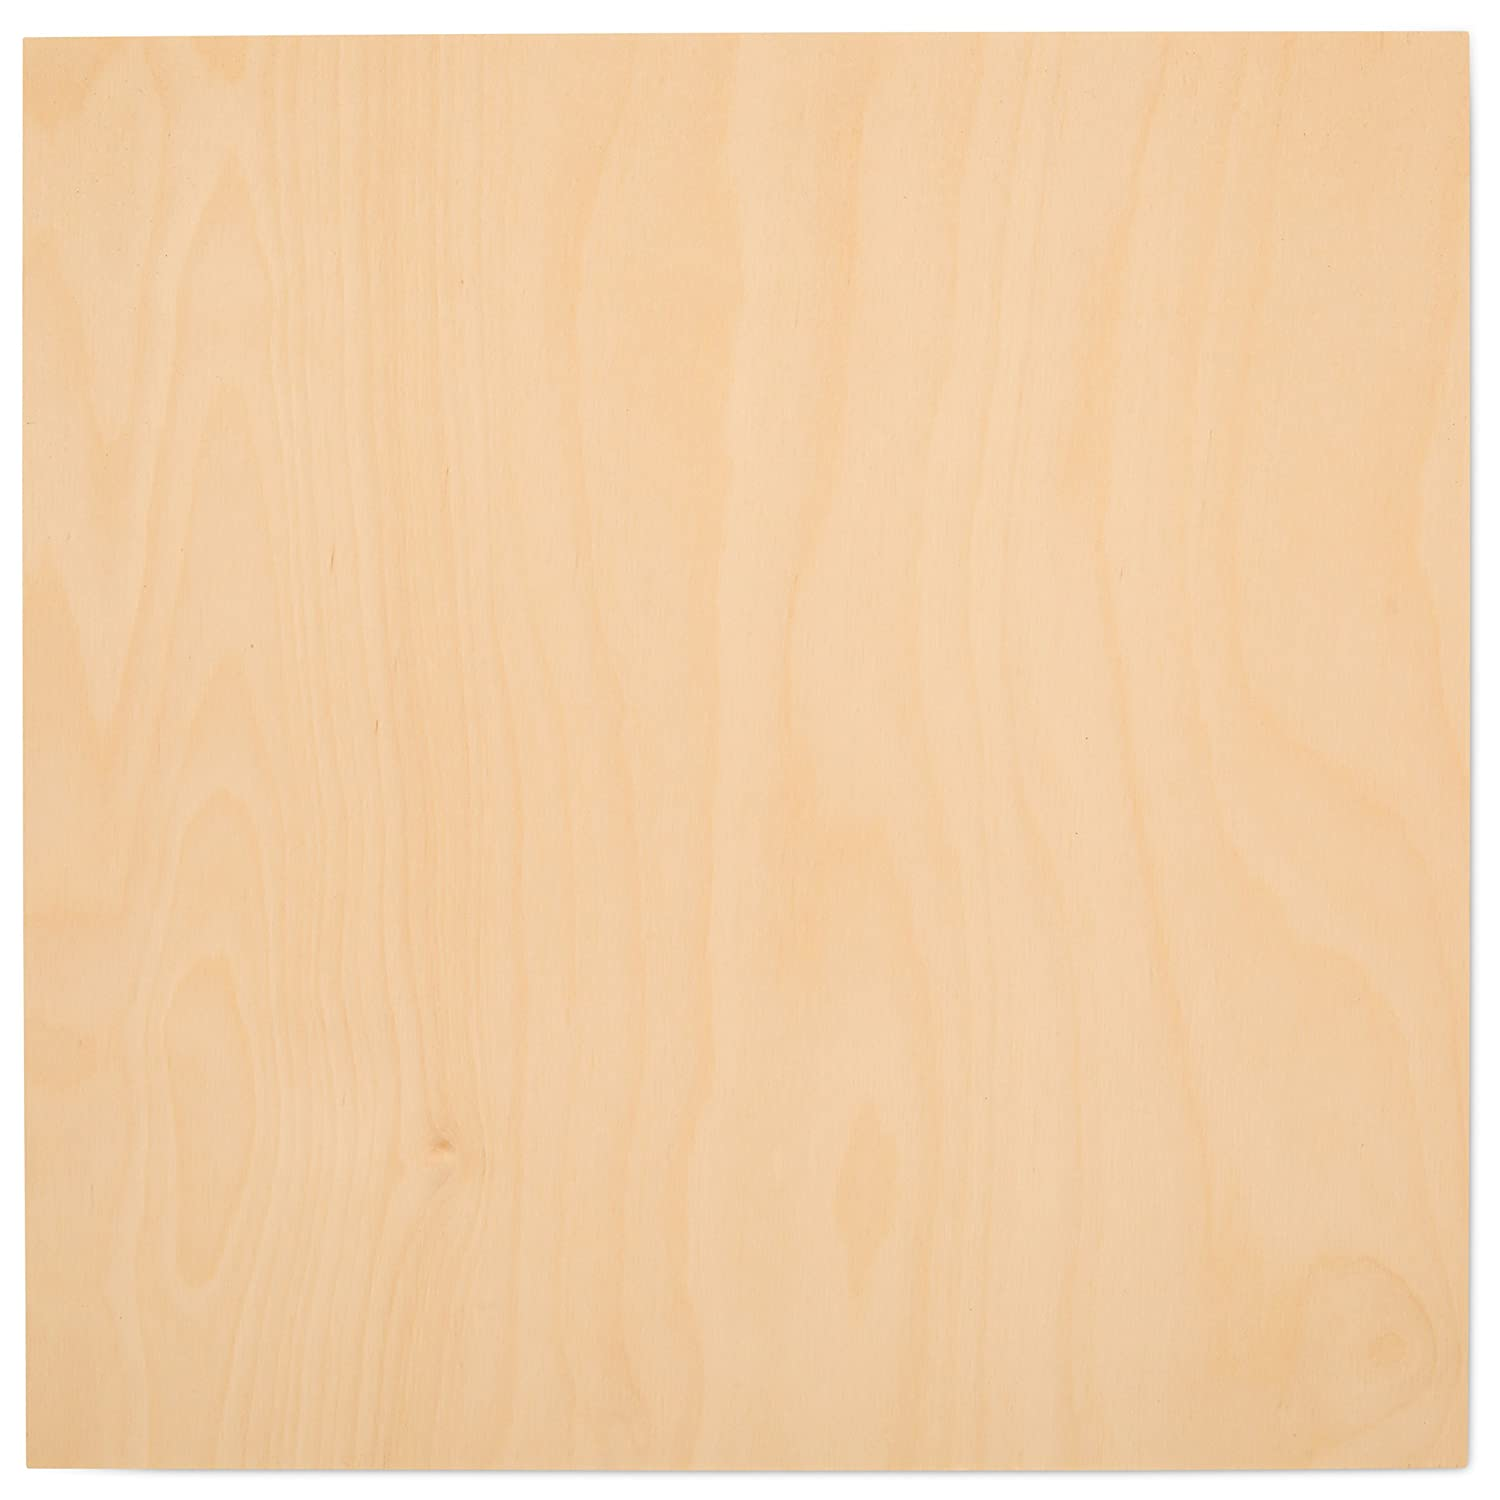 3 mm 1/8x 12x 12 Premium Baltic Birch Plywood B/BB Grade - 8 Flat Sheets By Woodpeckers 4336907188